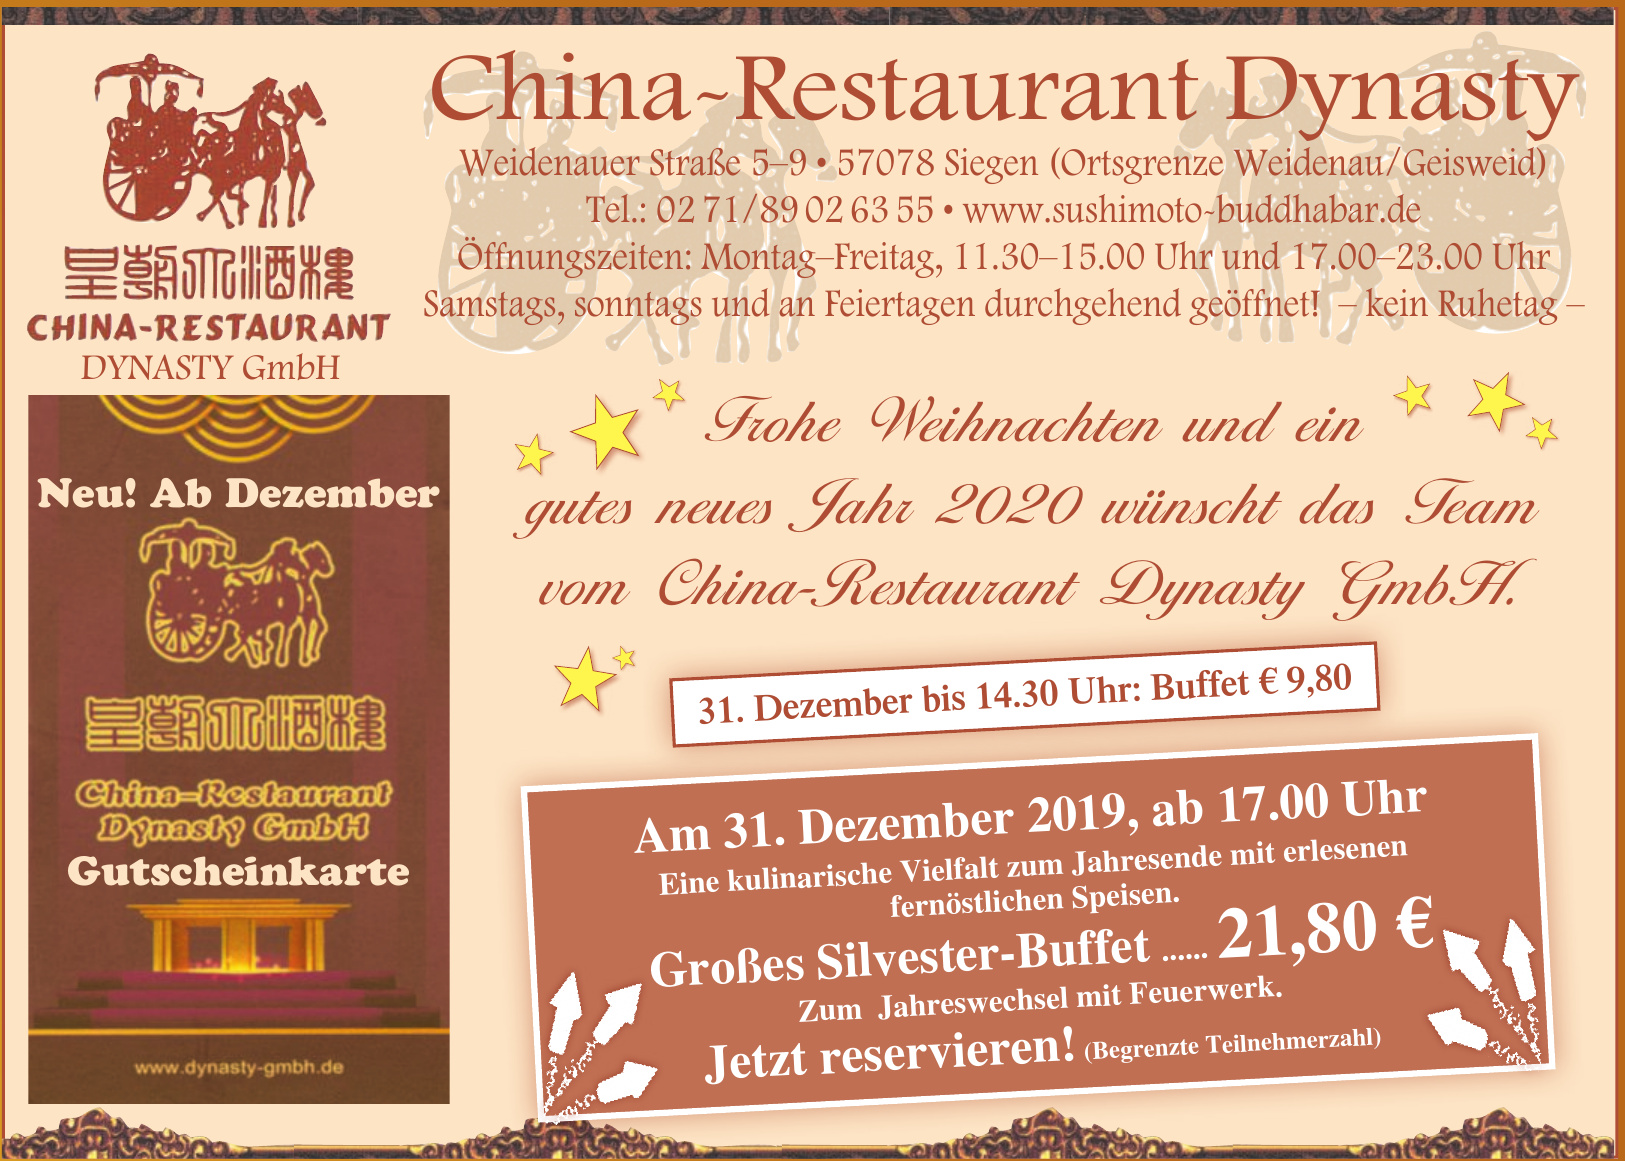 China-Restaurant Dynasty